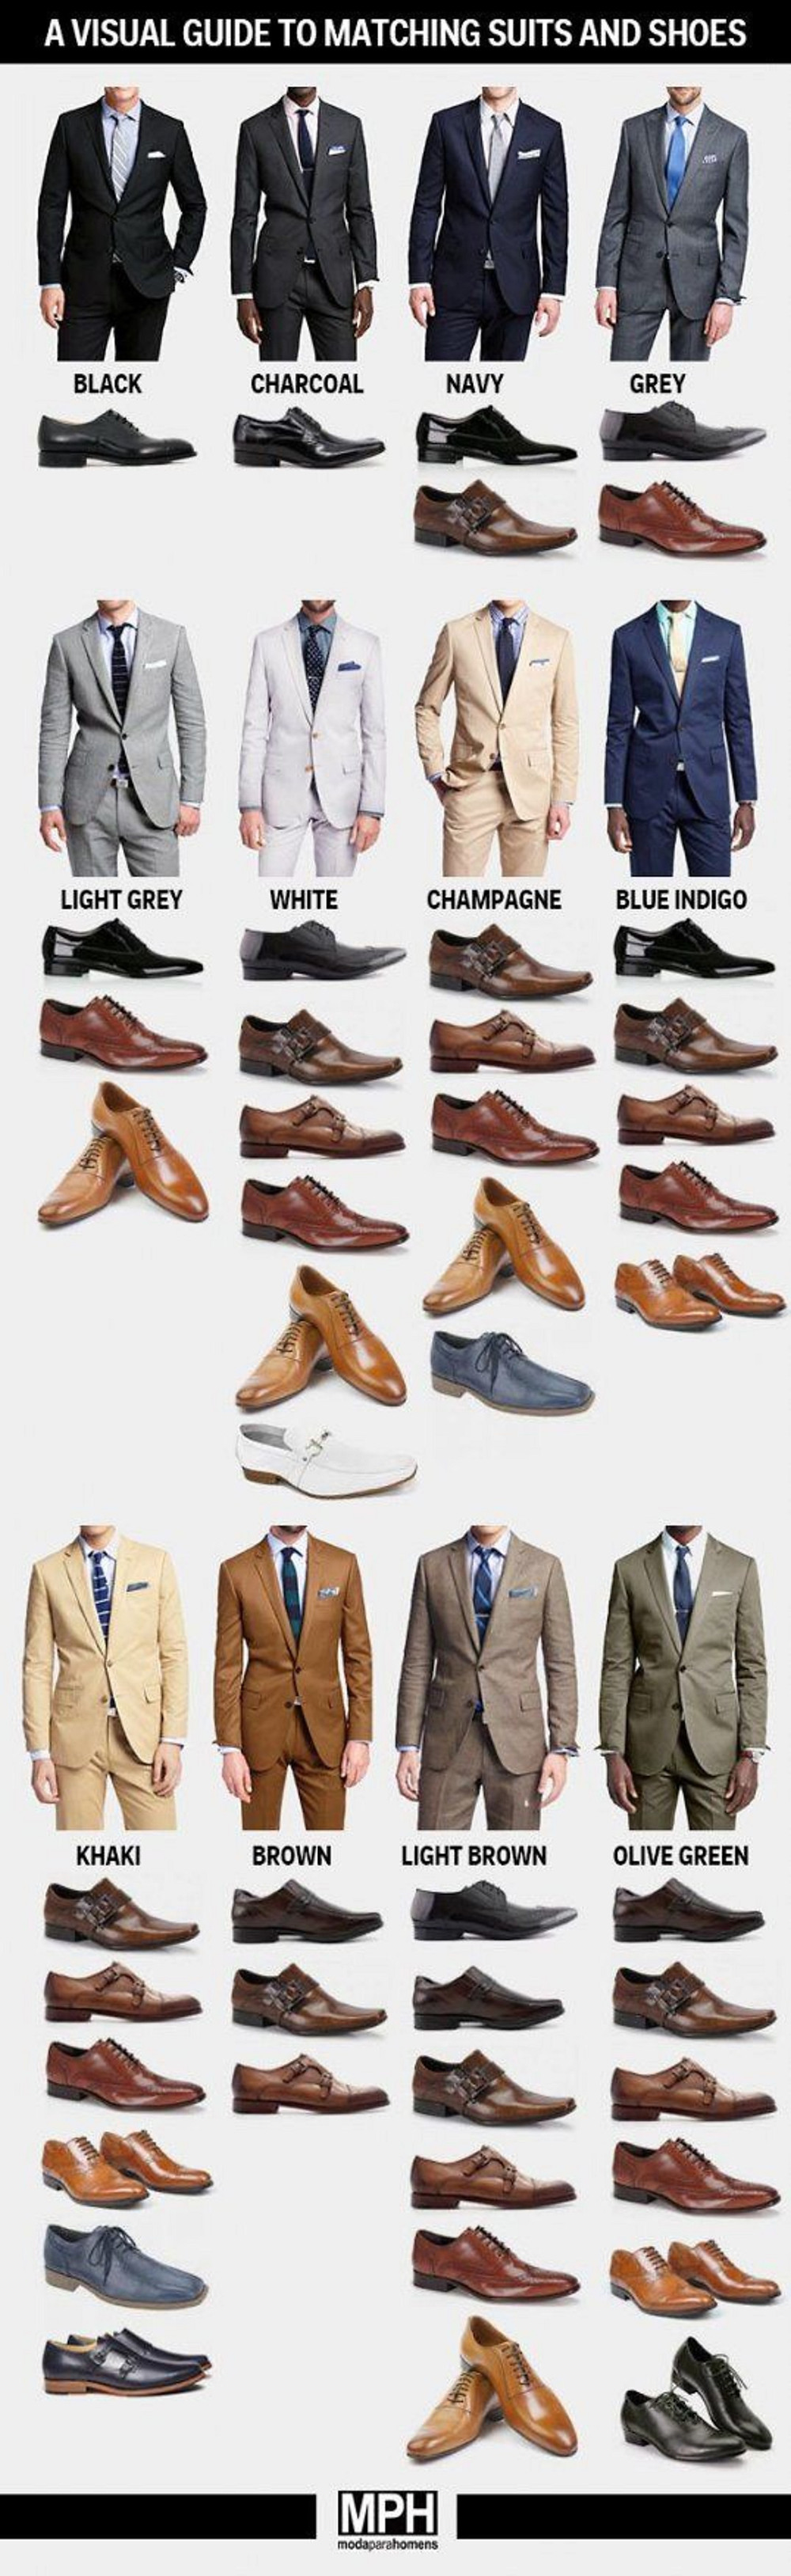 The Ultimate Guide to matching suits and shoes.